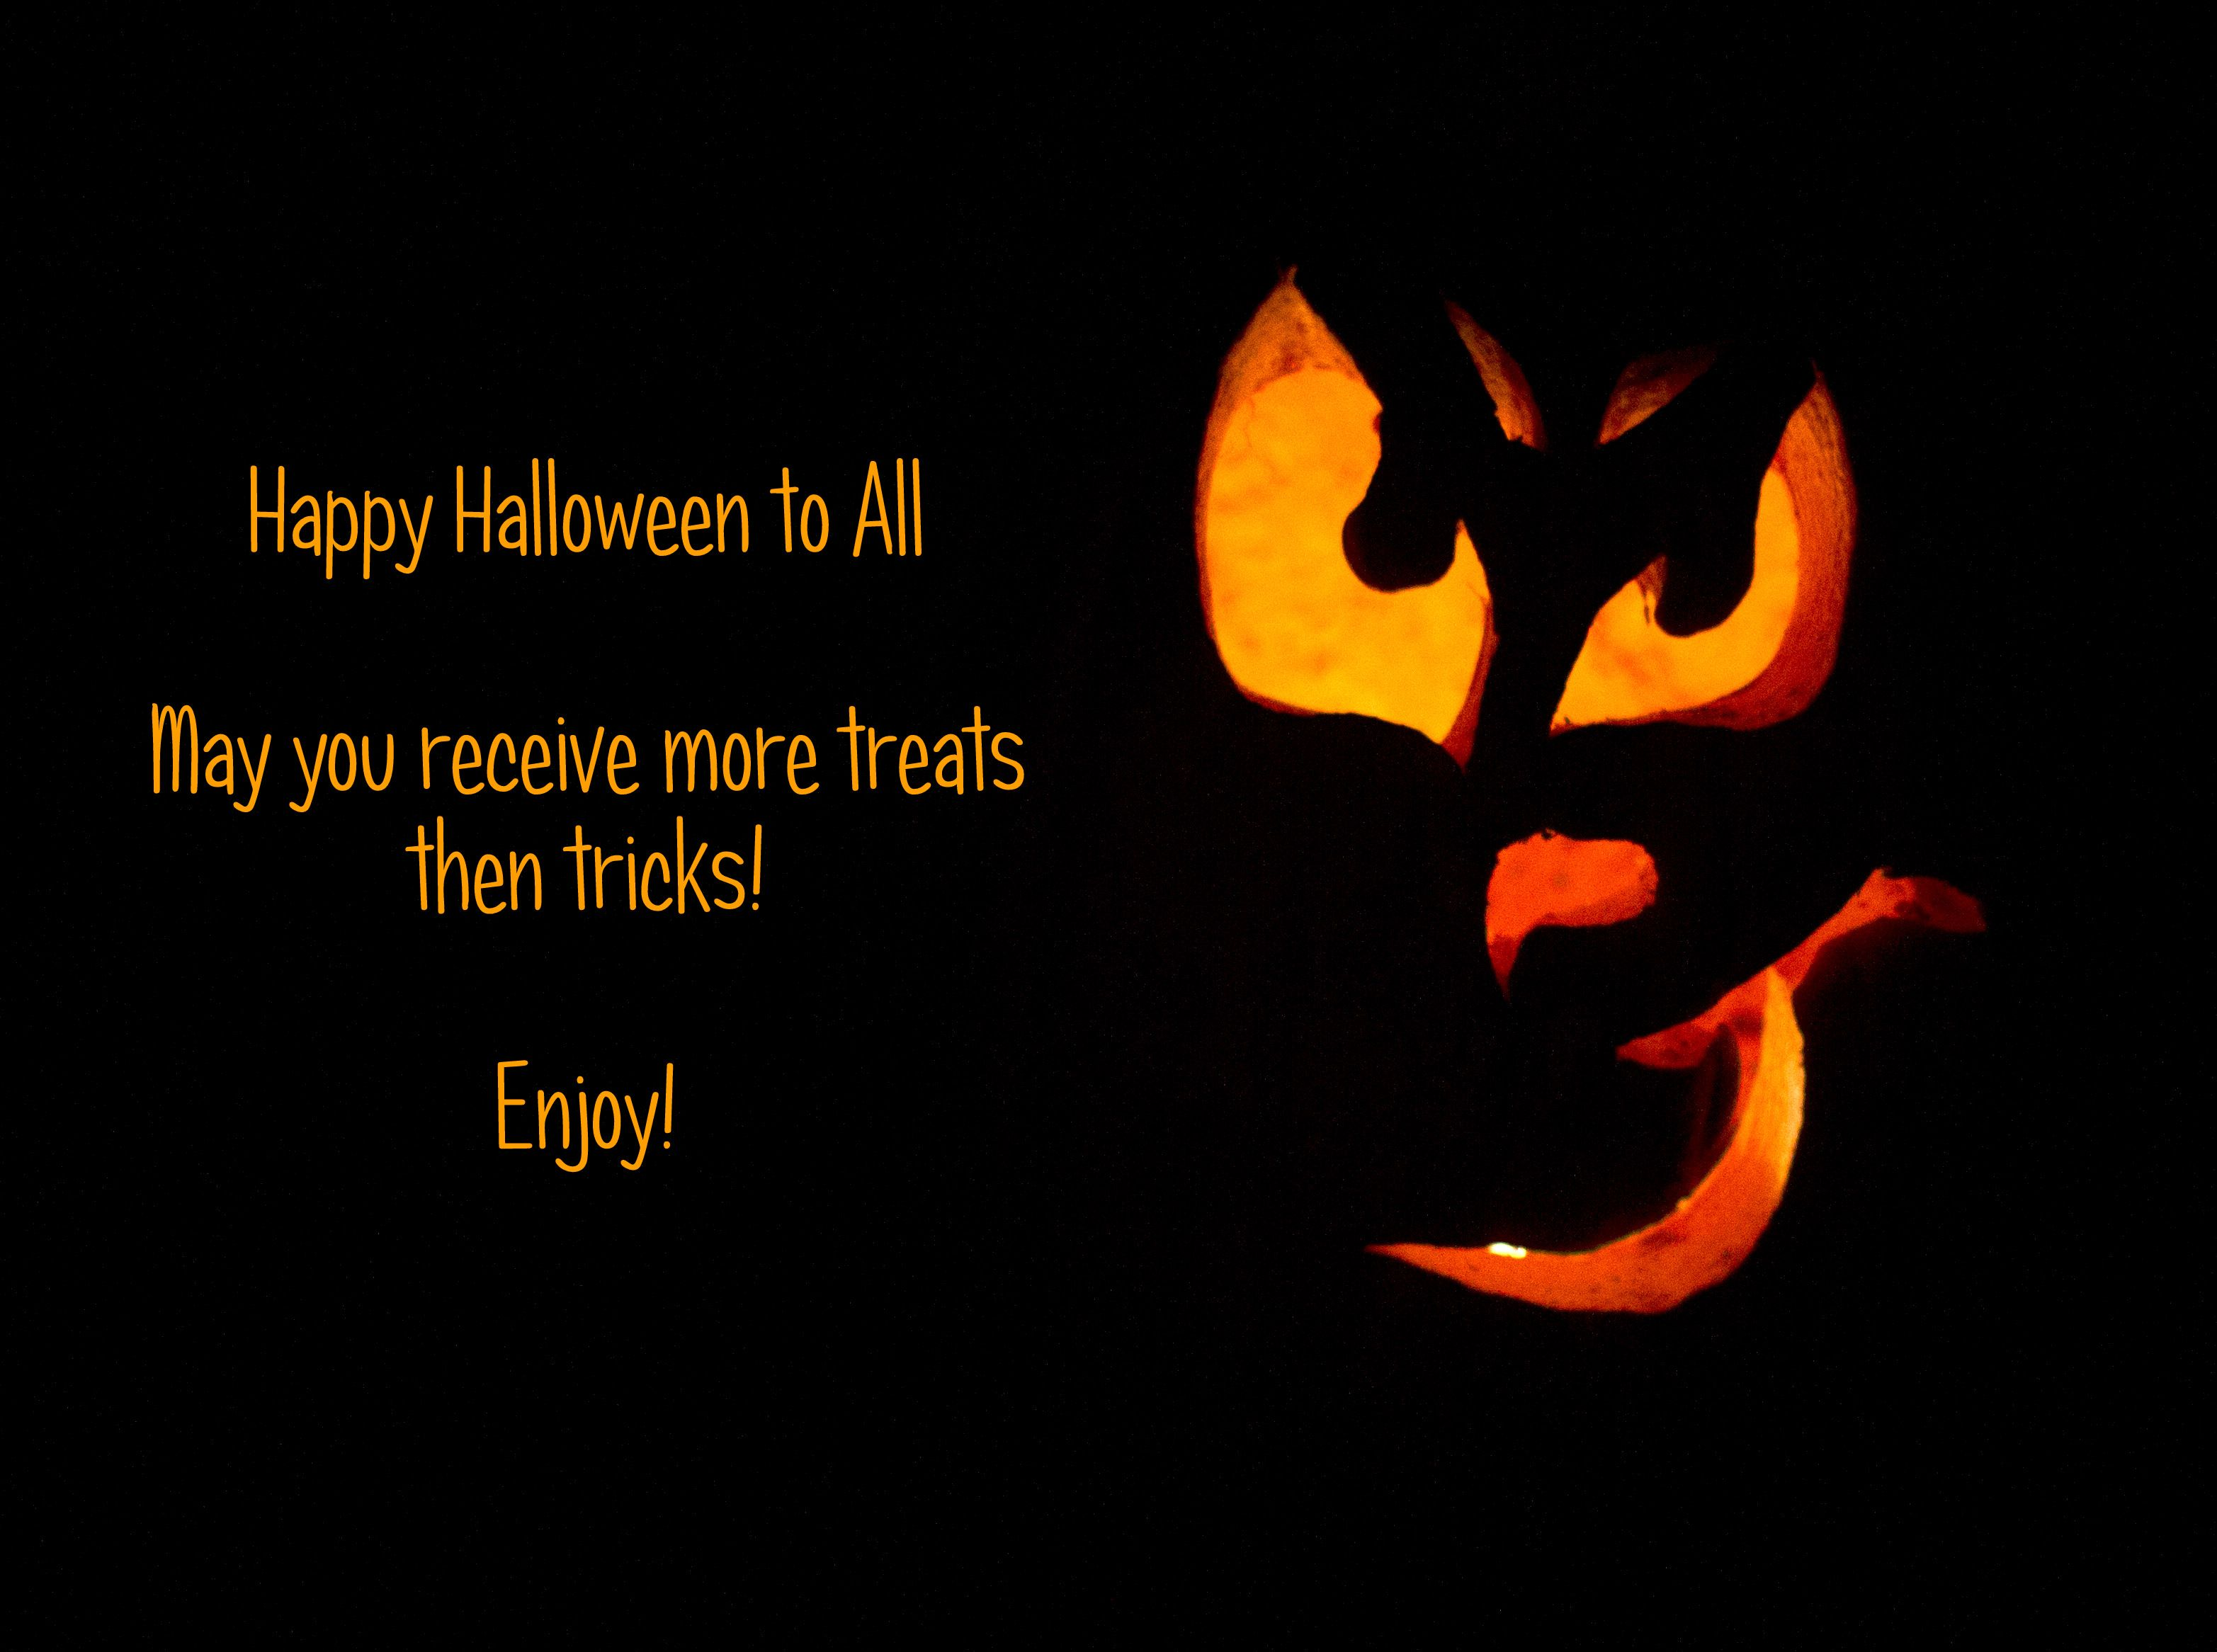 Tricks and Treats True quotes, Treats, Happy halloween